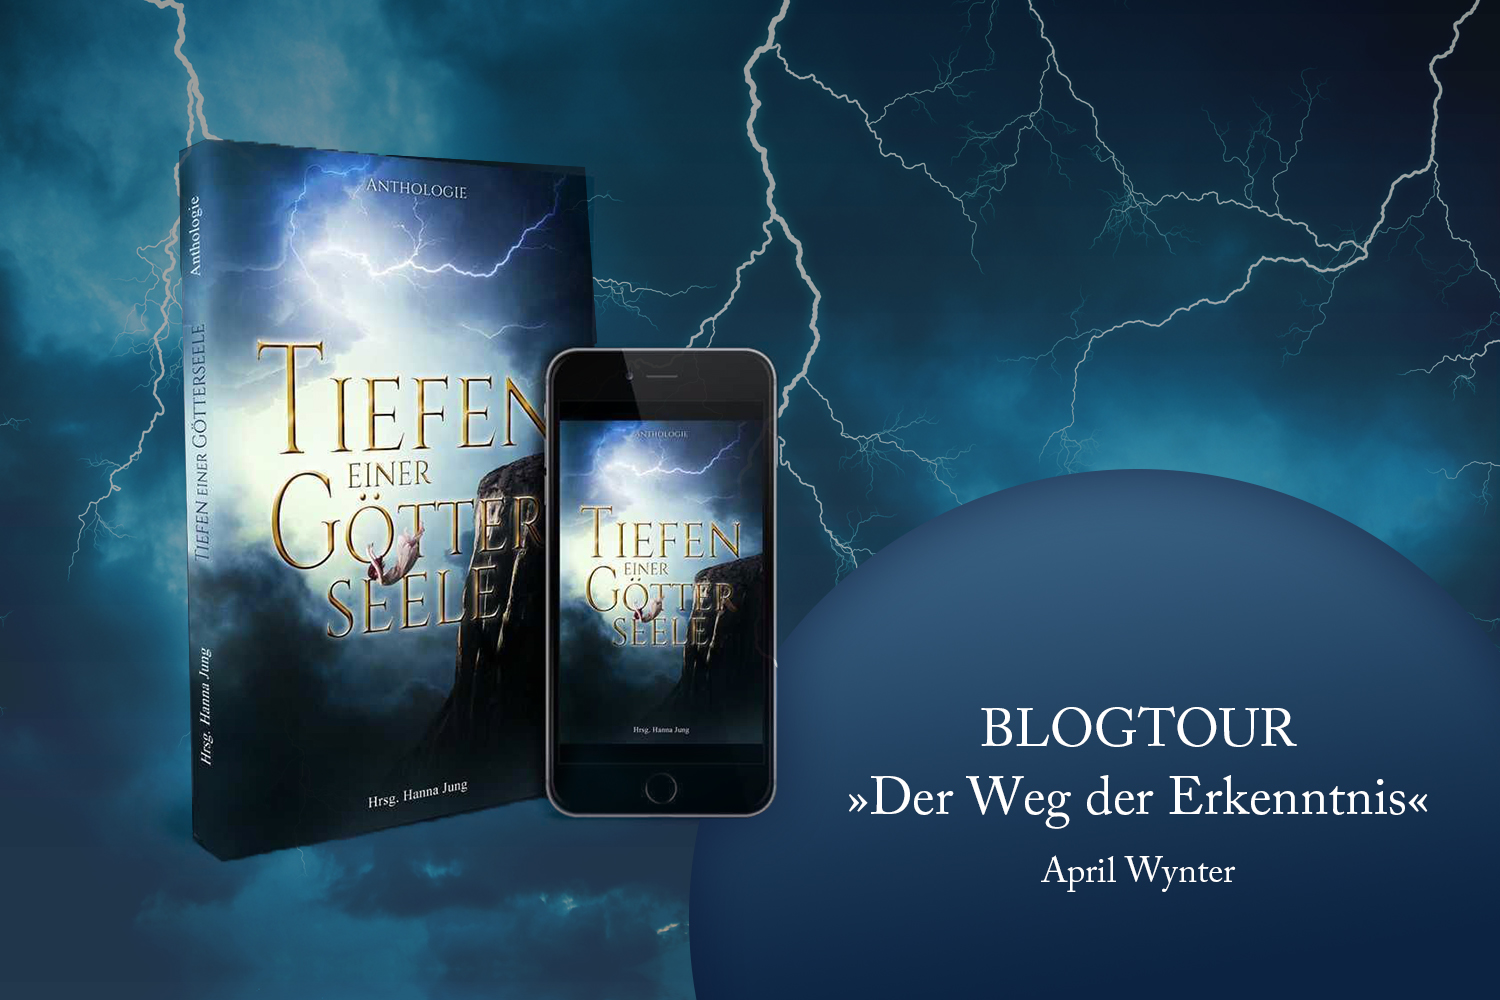 Blogtour April Wynter Anthologie Tiefen einer Goetterseele